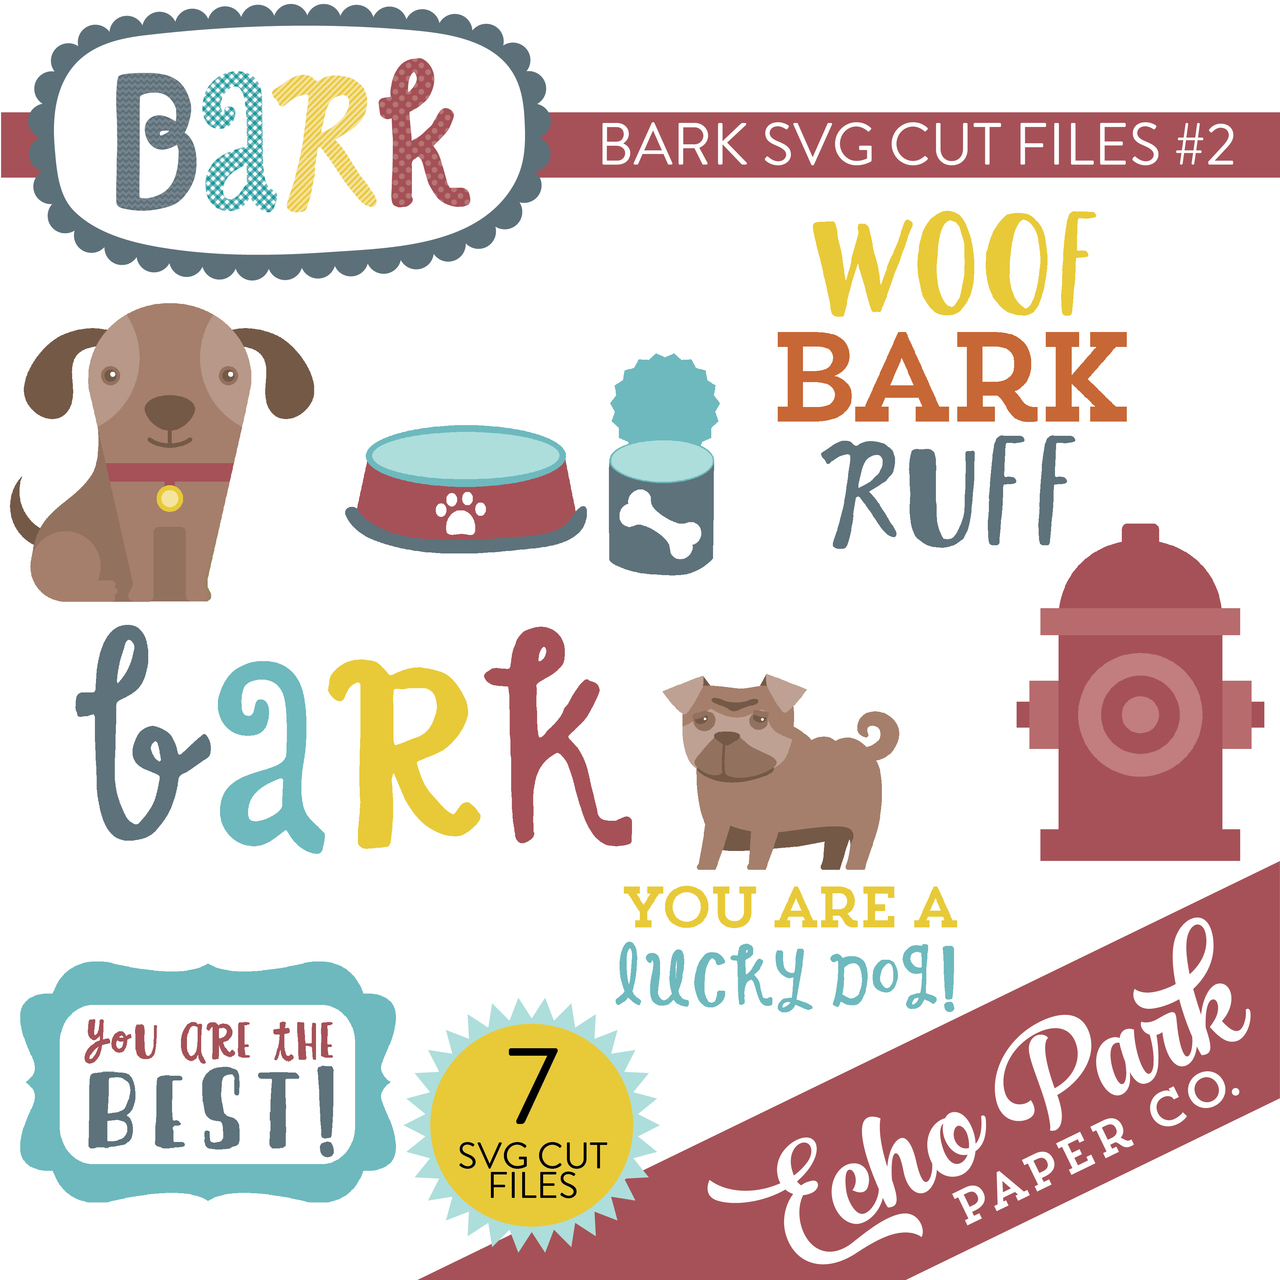 Bark SVG Cut Files #2